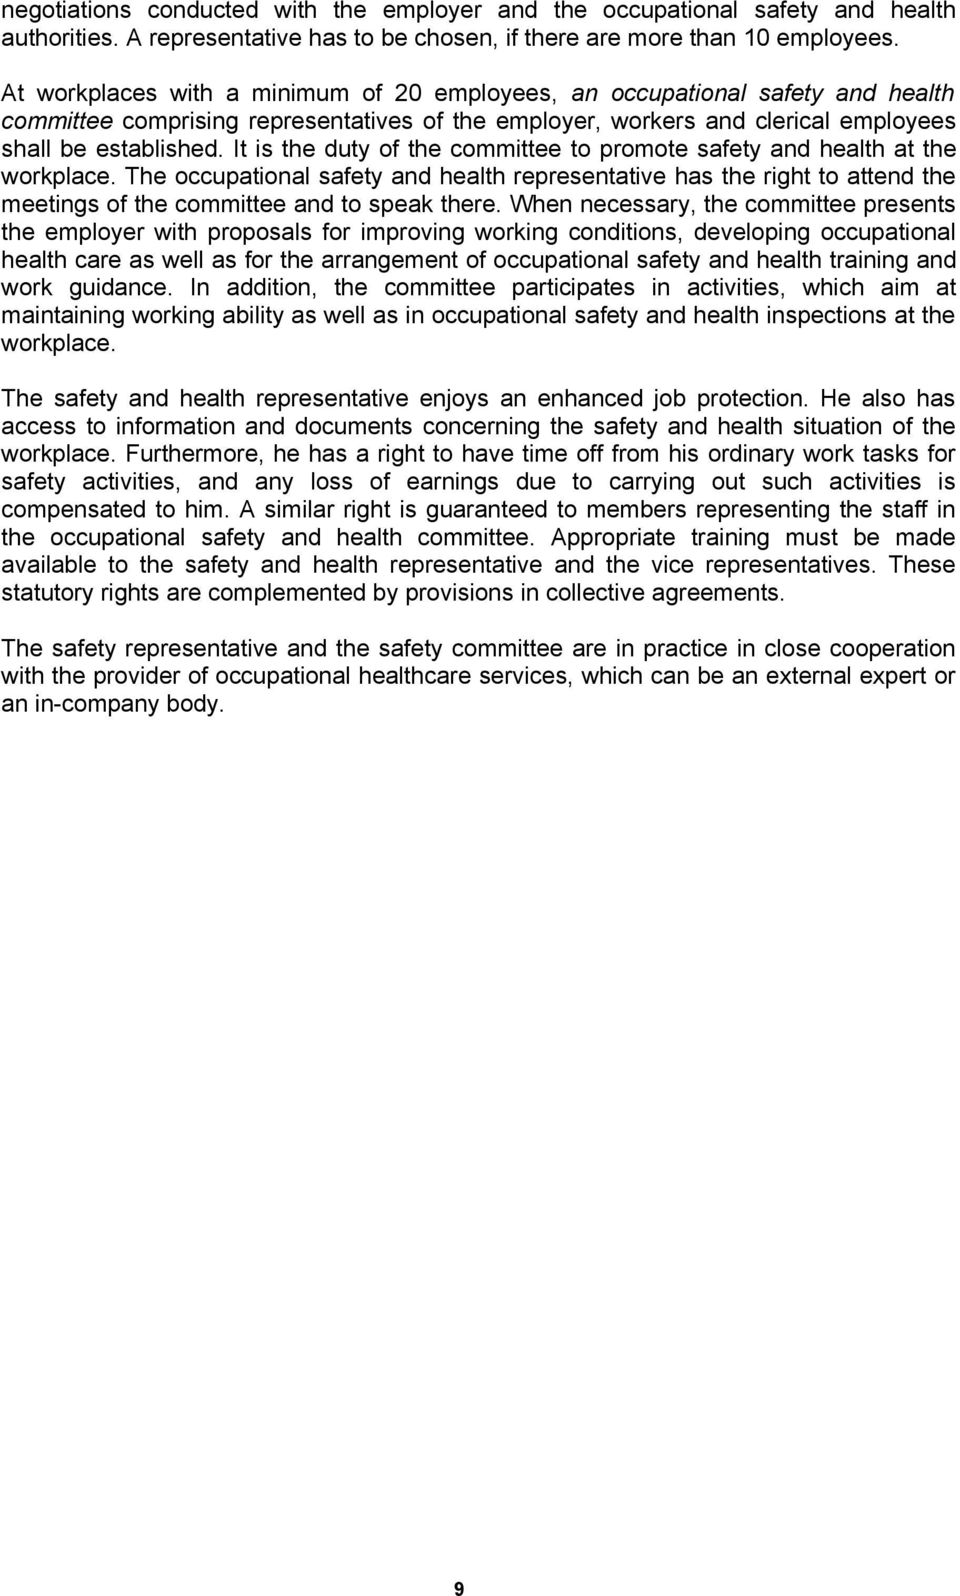 It is the duty of the committee to promote safety and health at the workplace.